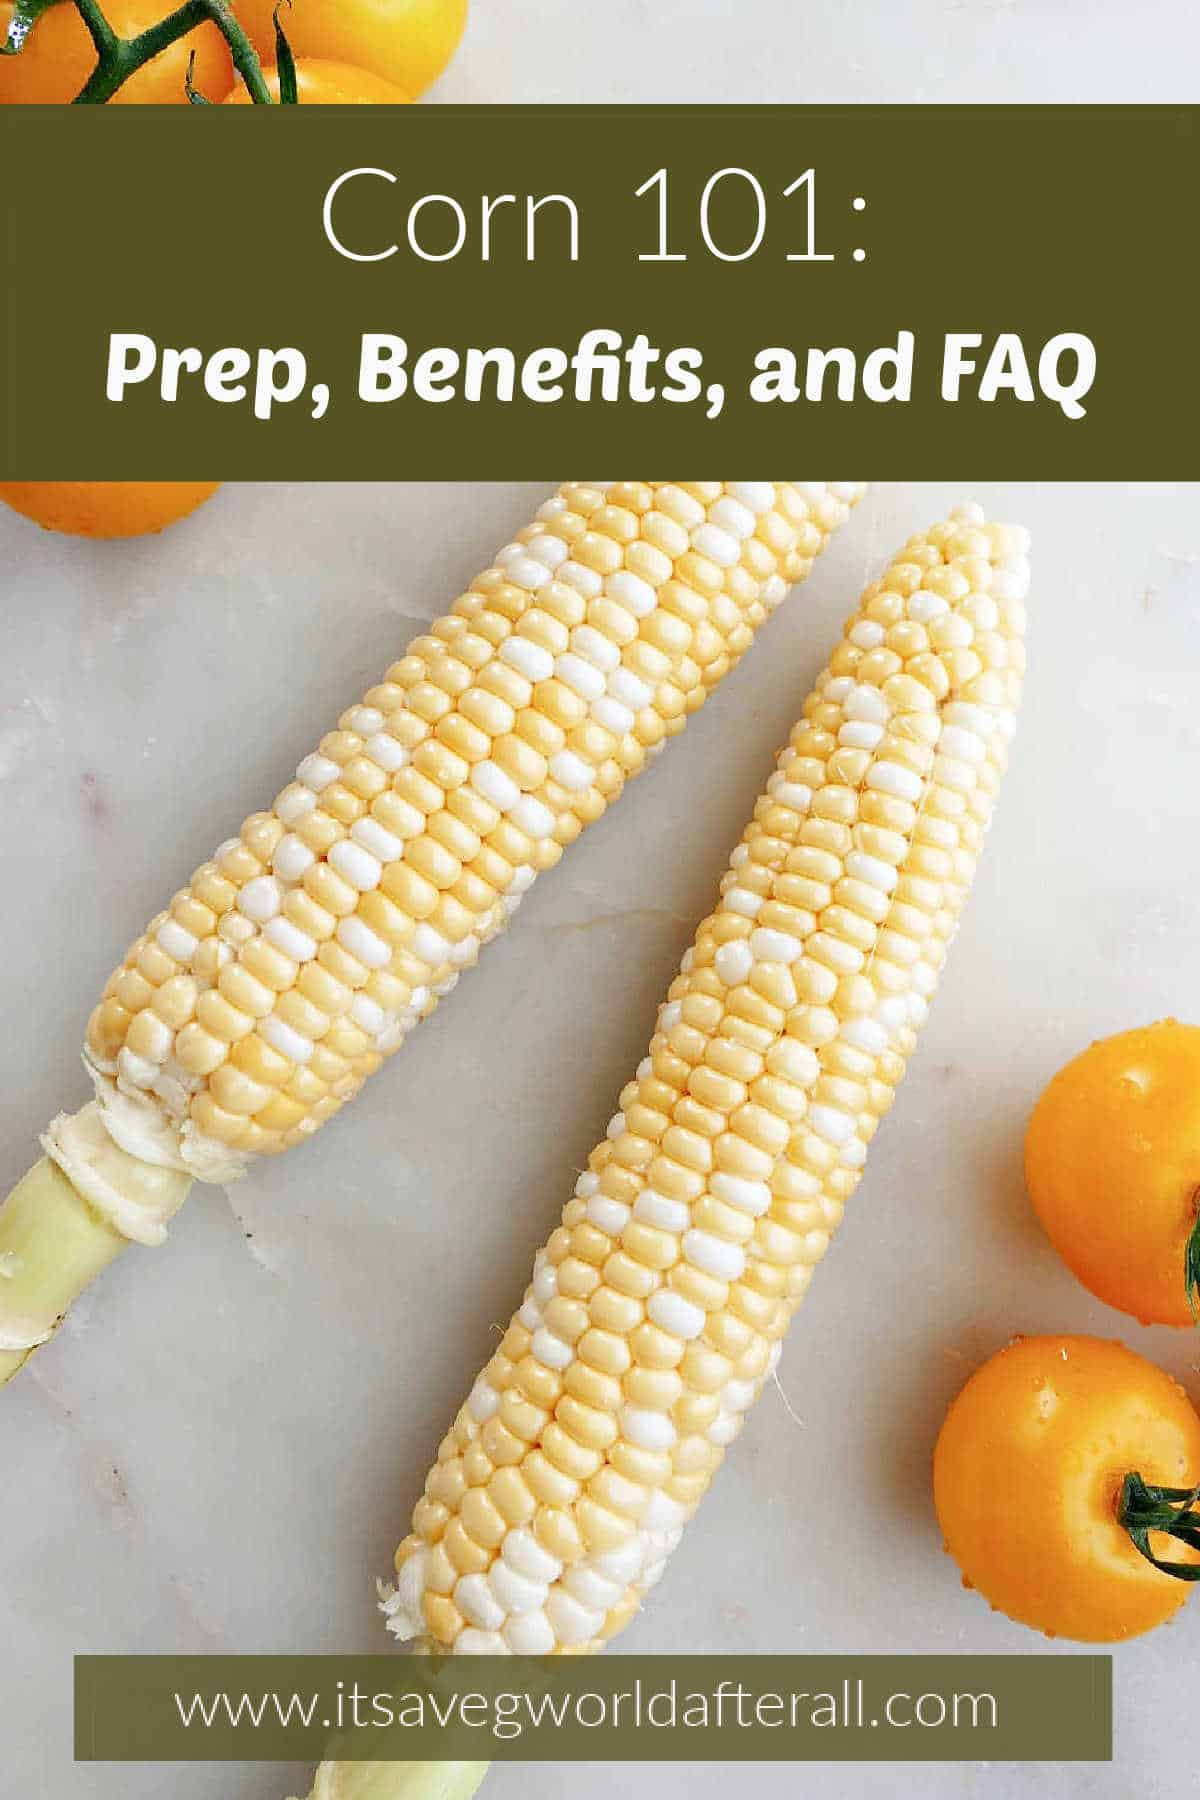 image of corn and tomatoes on a counter with text boxes over the image